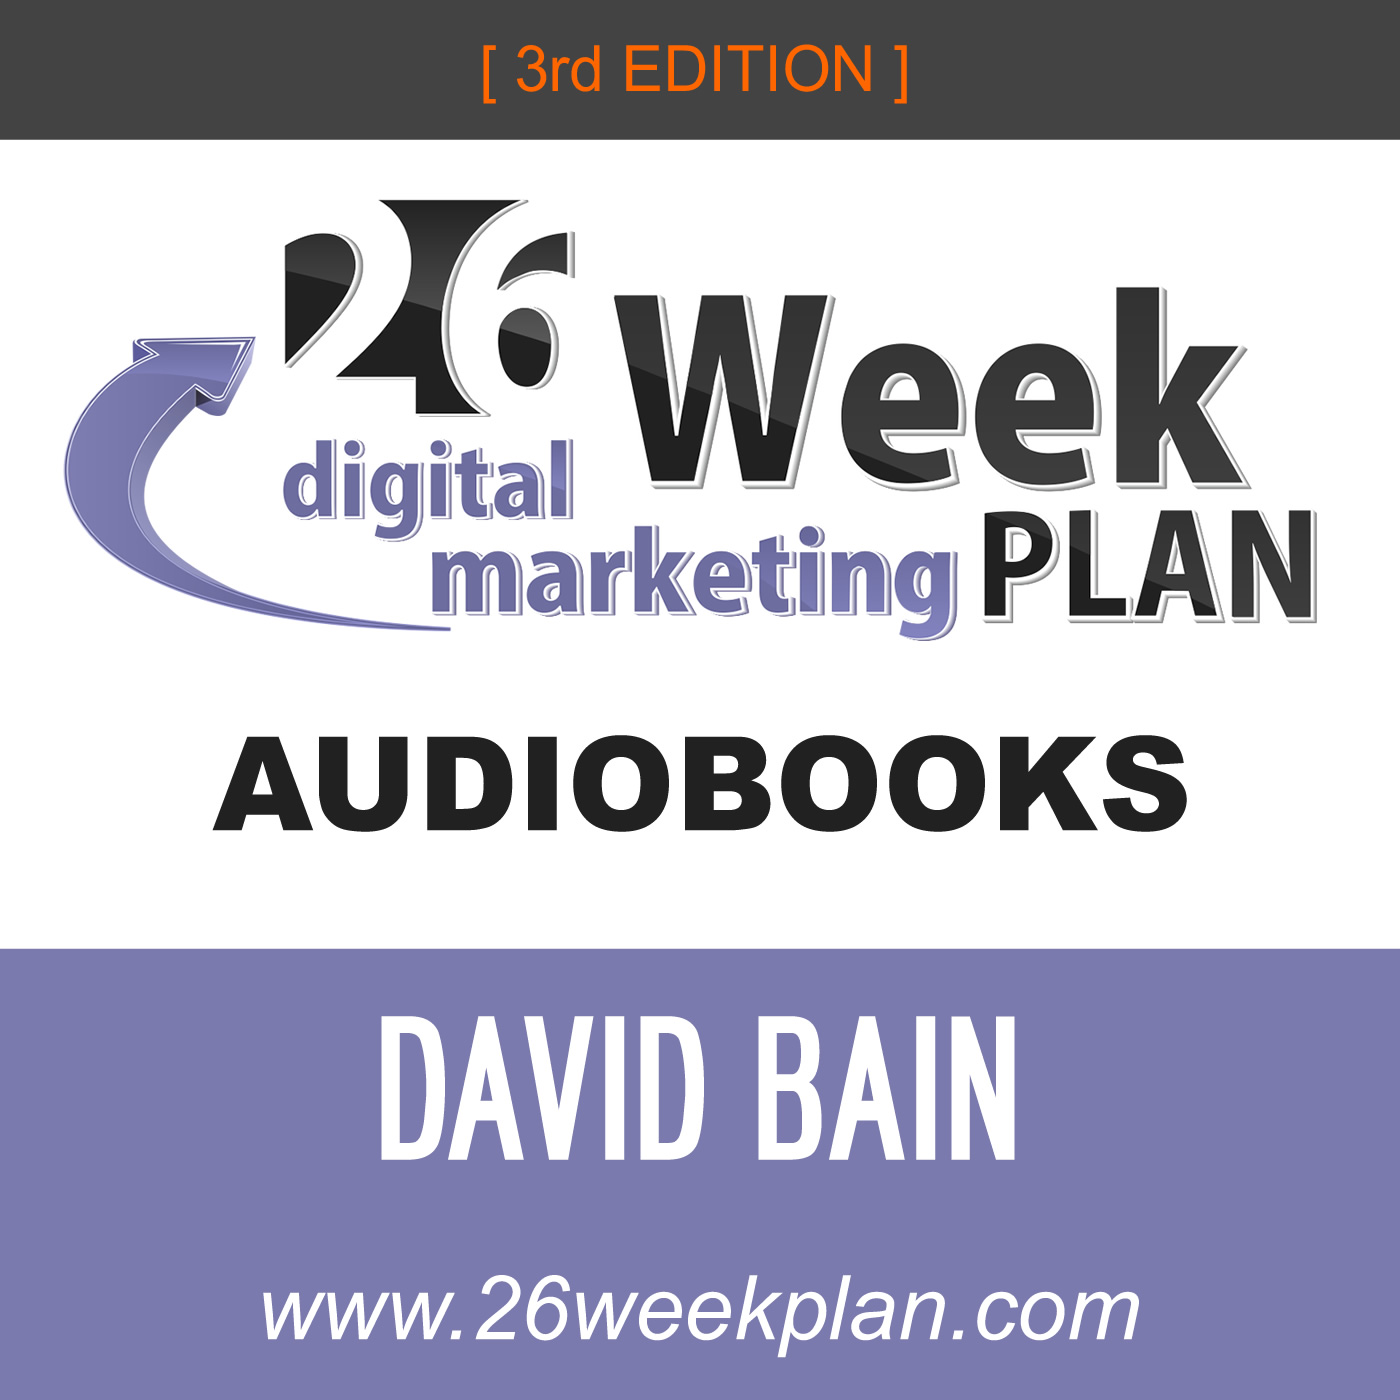 26-Week Digital Marketing Plan AUDIOBOOKS